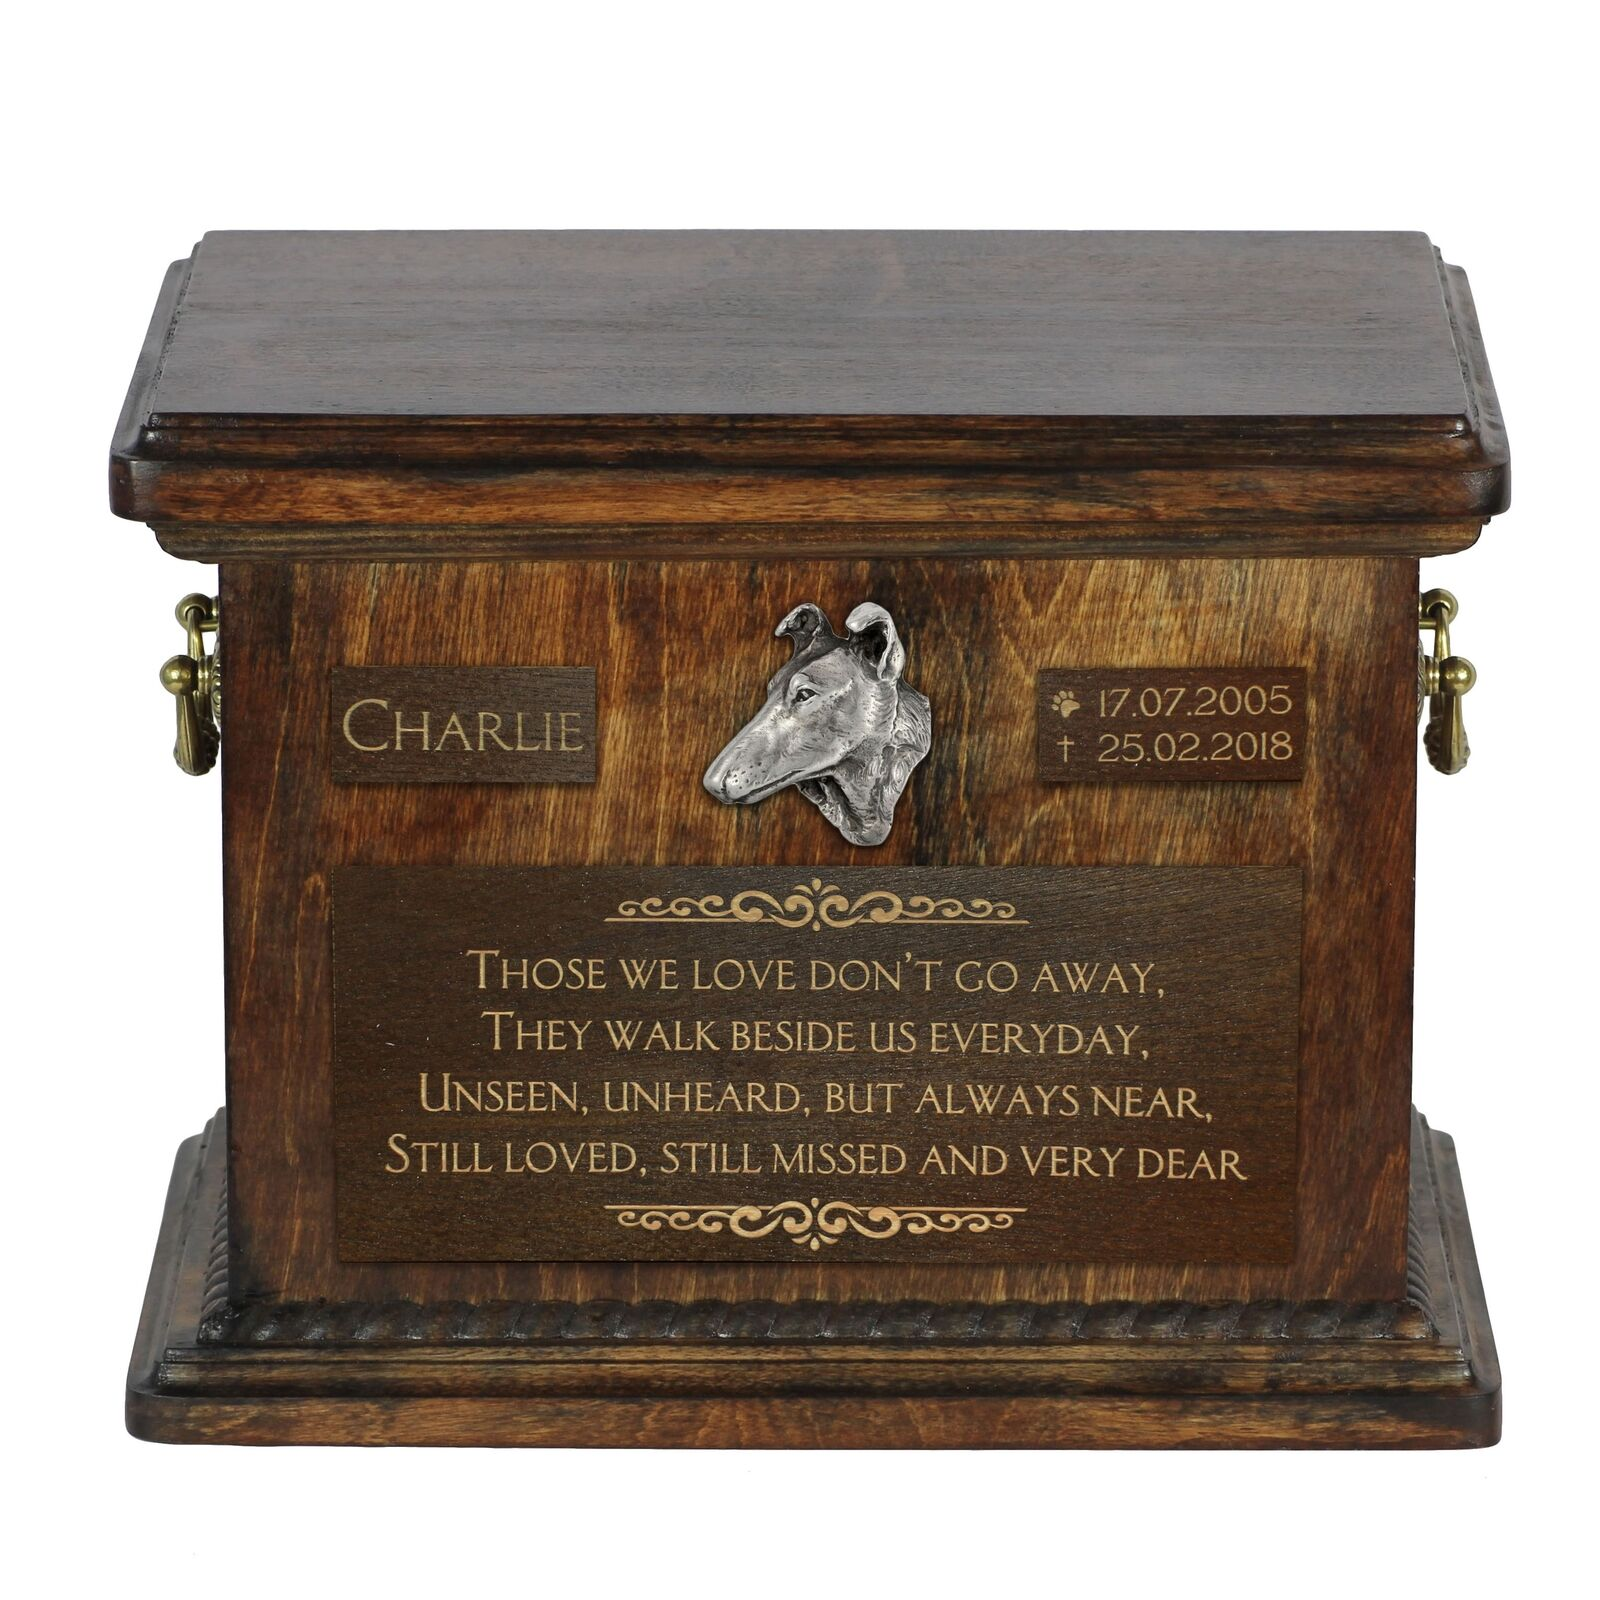 Collie smoothhaired - Urn for dog's ashes with image of a dog, Art Dog